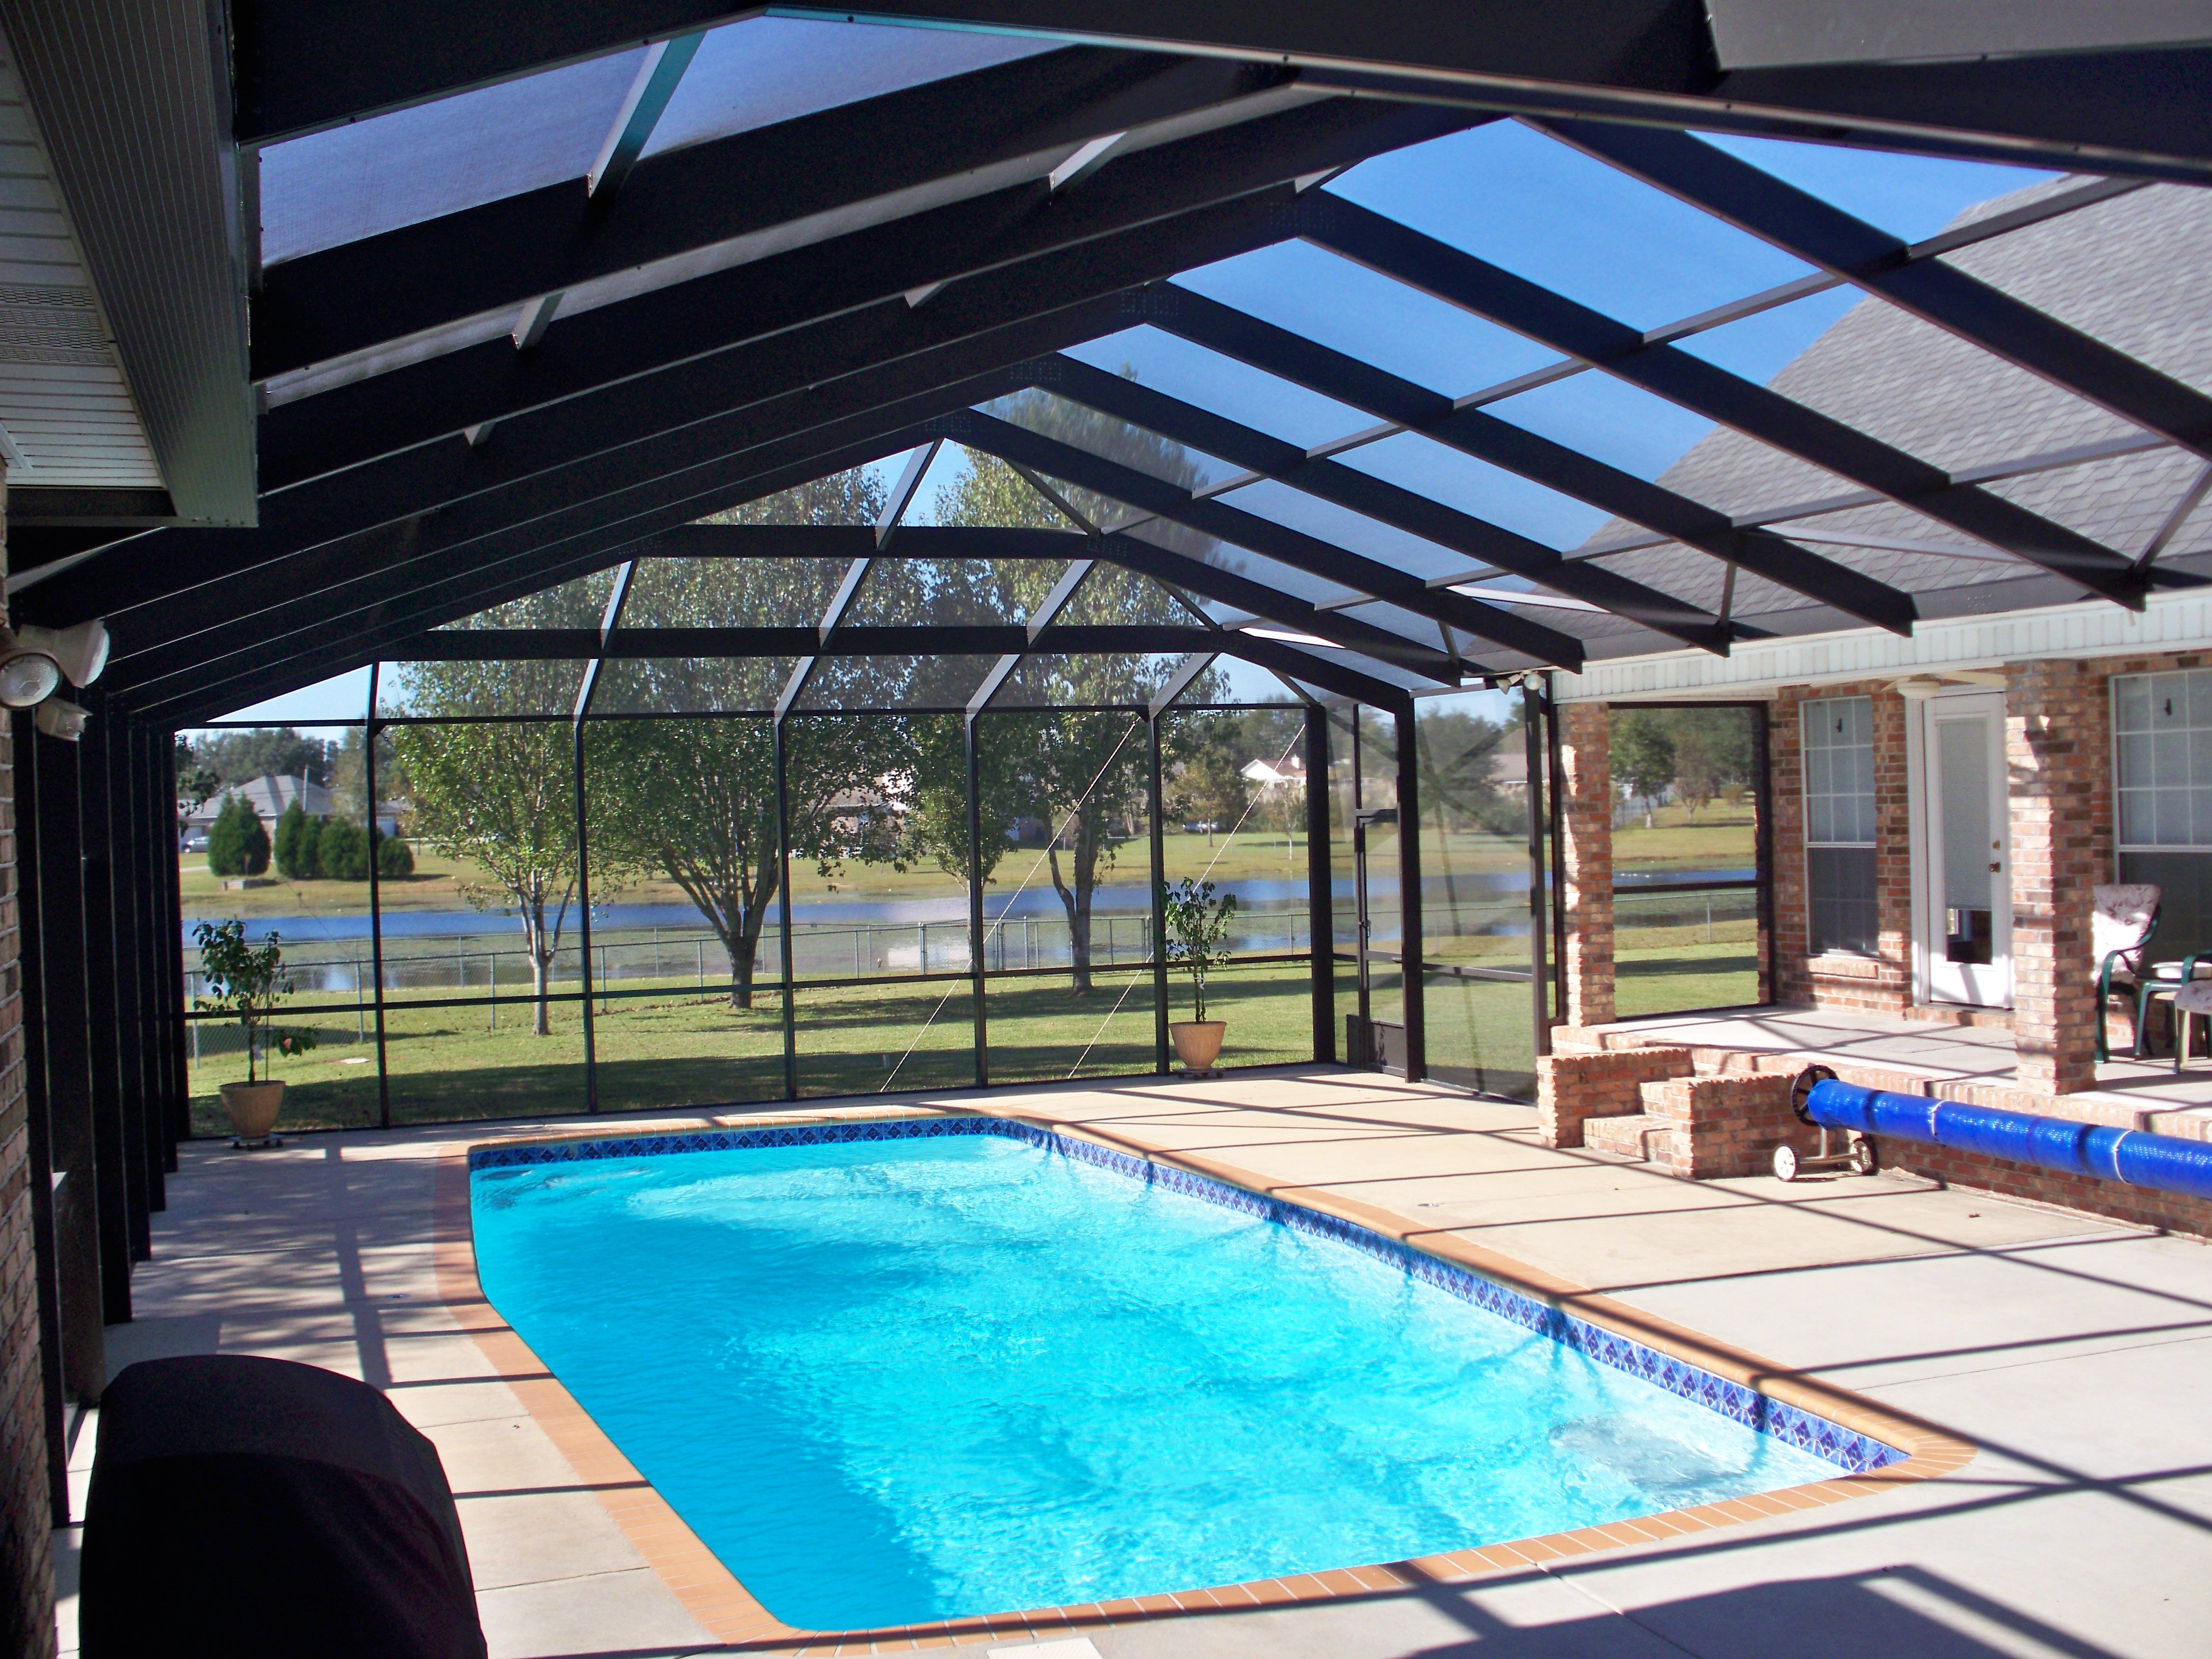 This Is A Bronze Pool Enclosure With A Gabled Roof We Installed